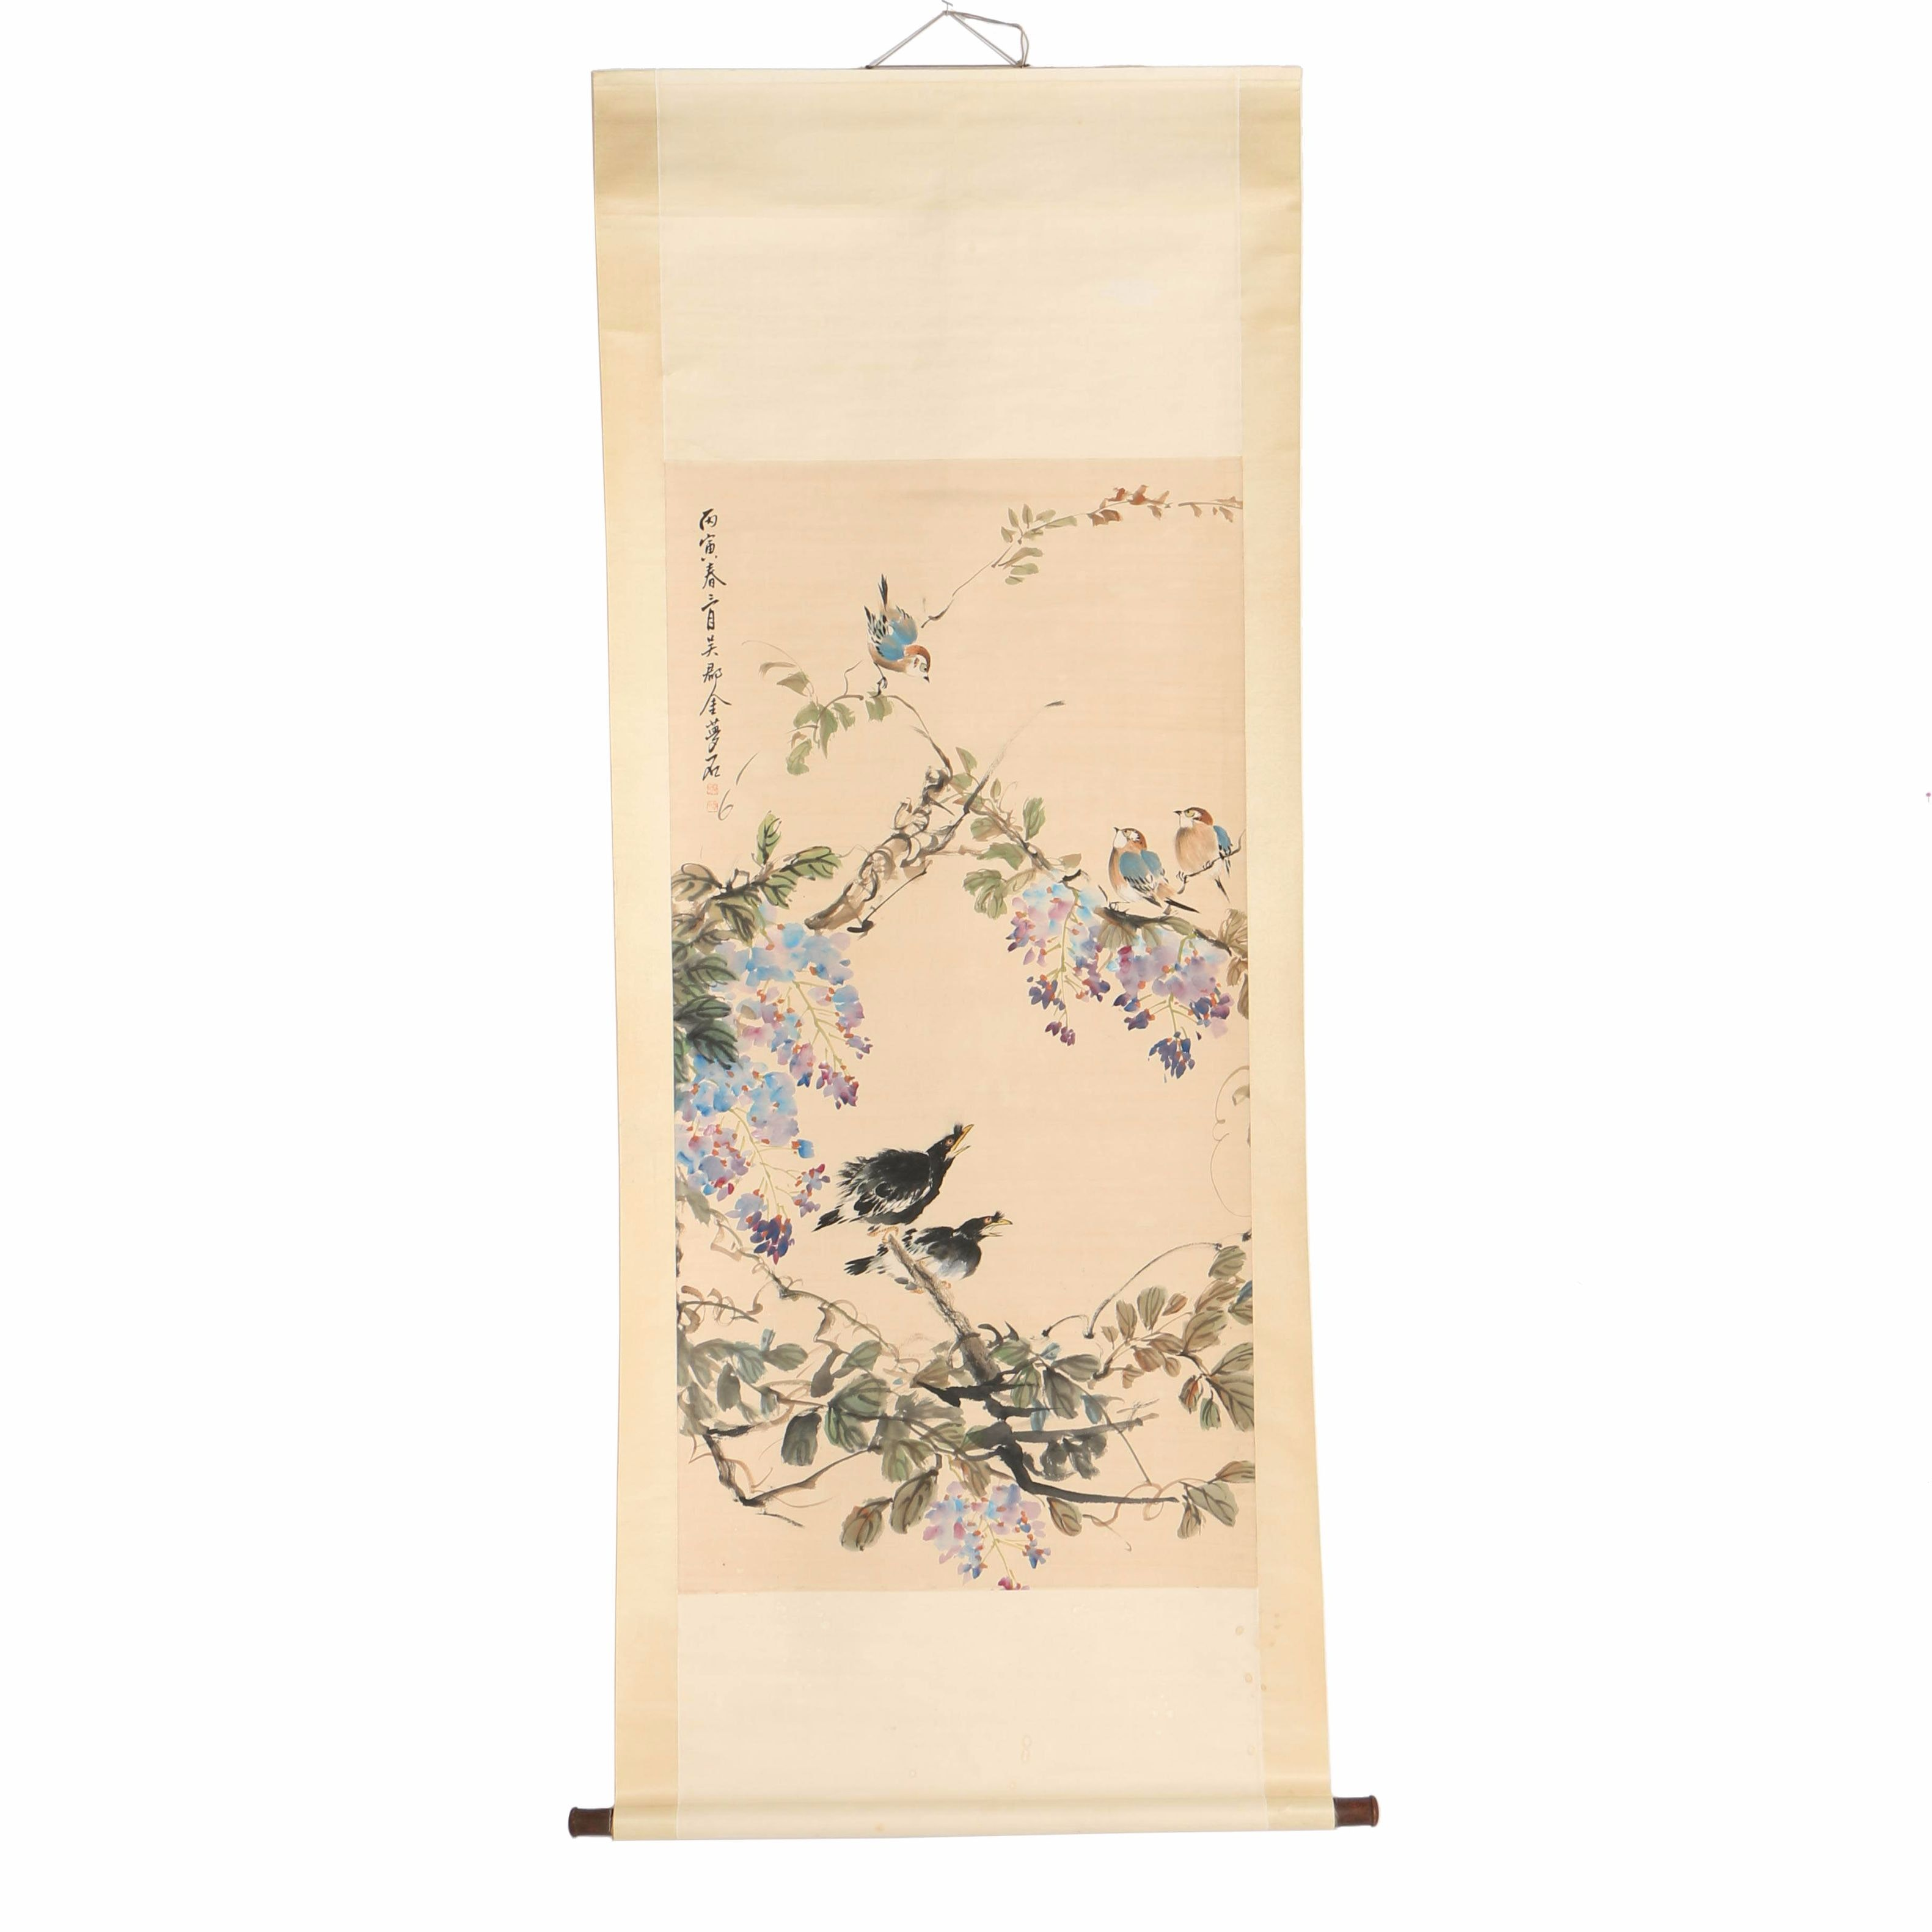 Chinese Watercolor and Ink Painting Hanging Scroll Signed Jin Mengshi